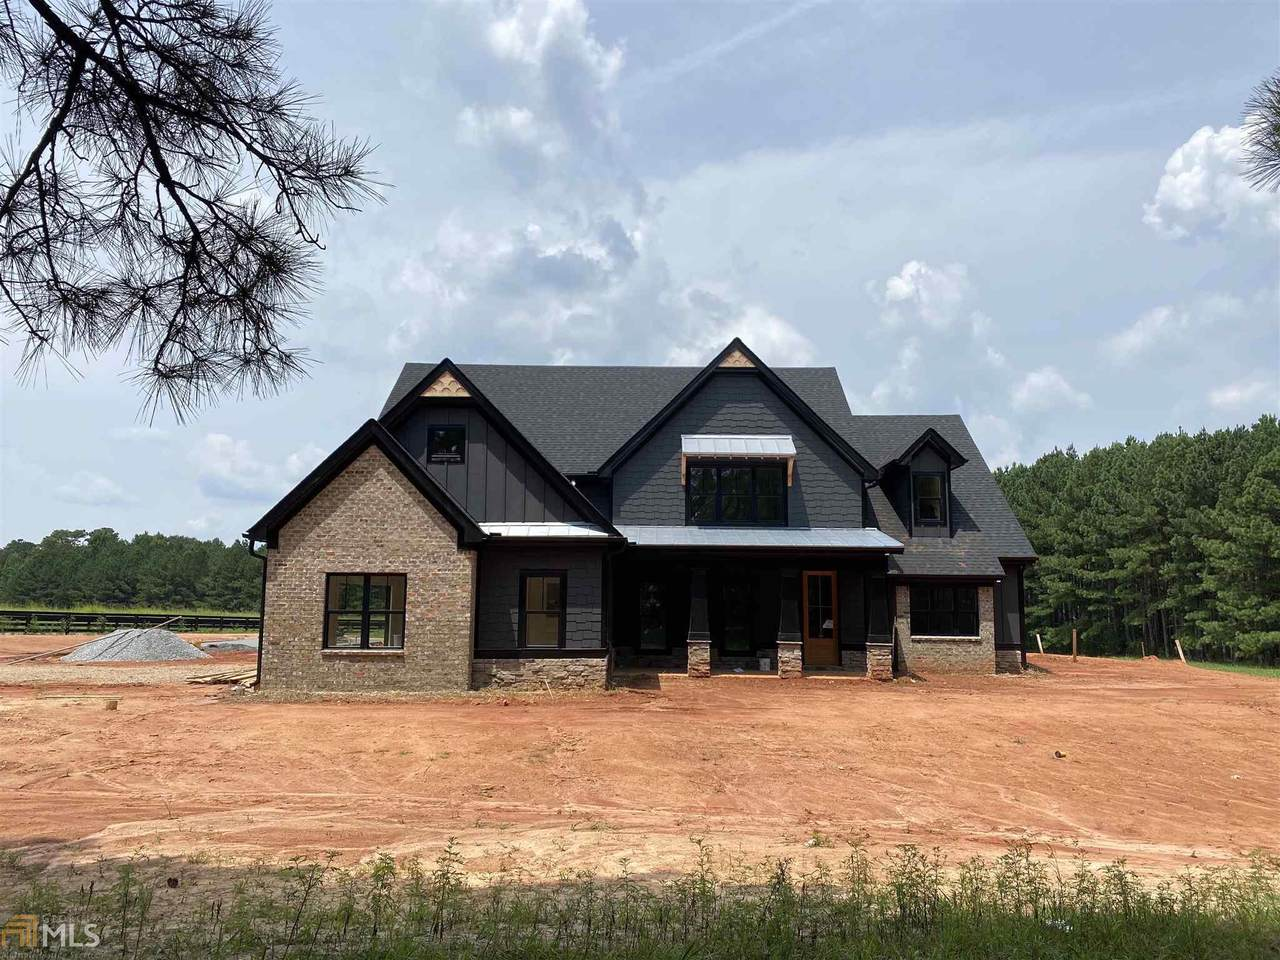 977 Lawshe Rd - Photo 1